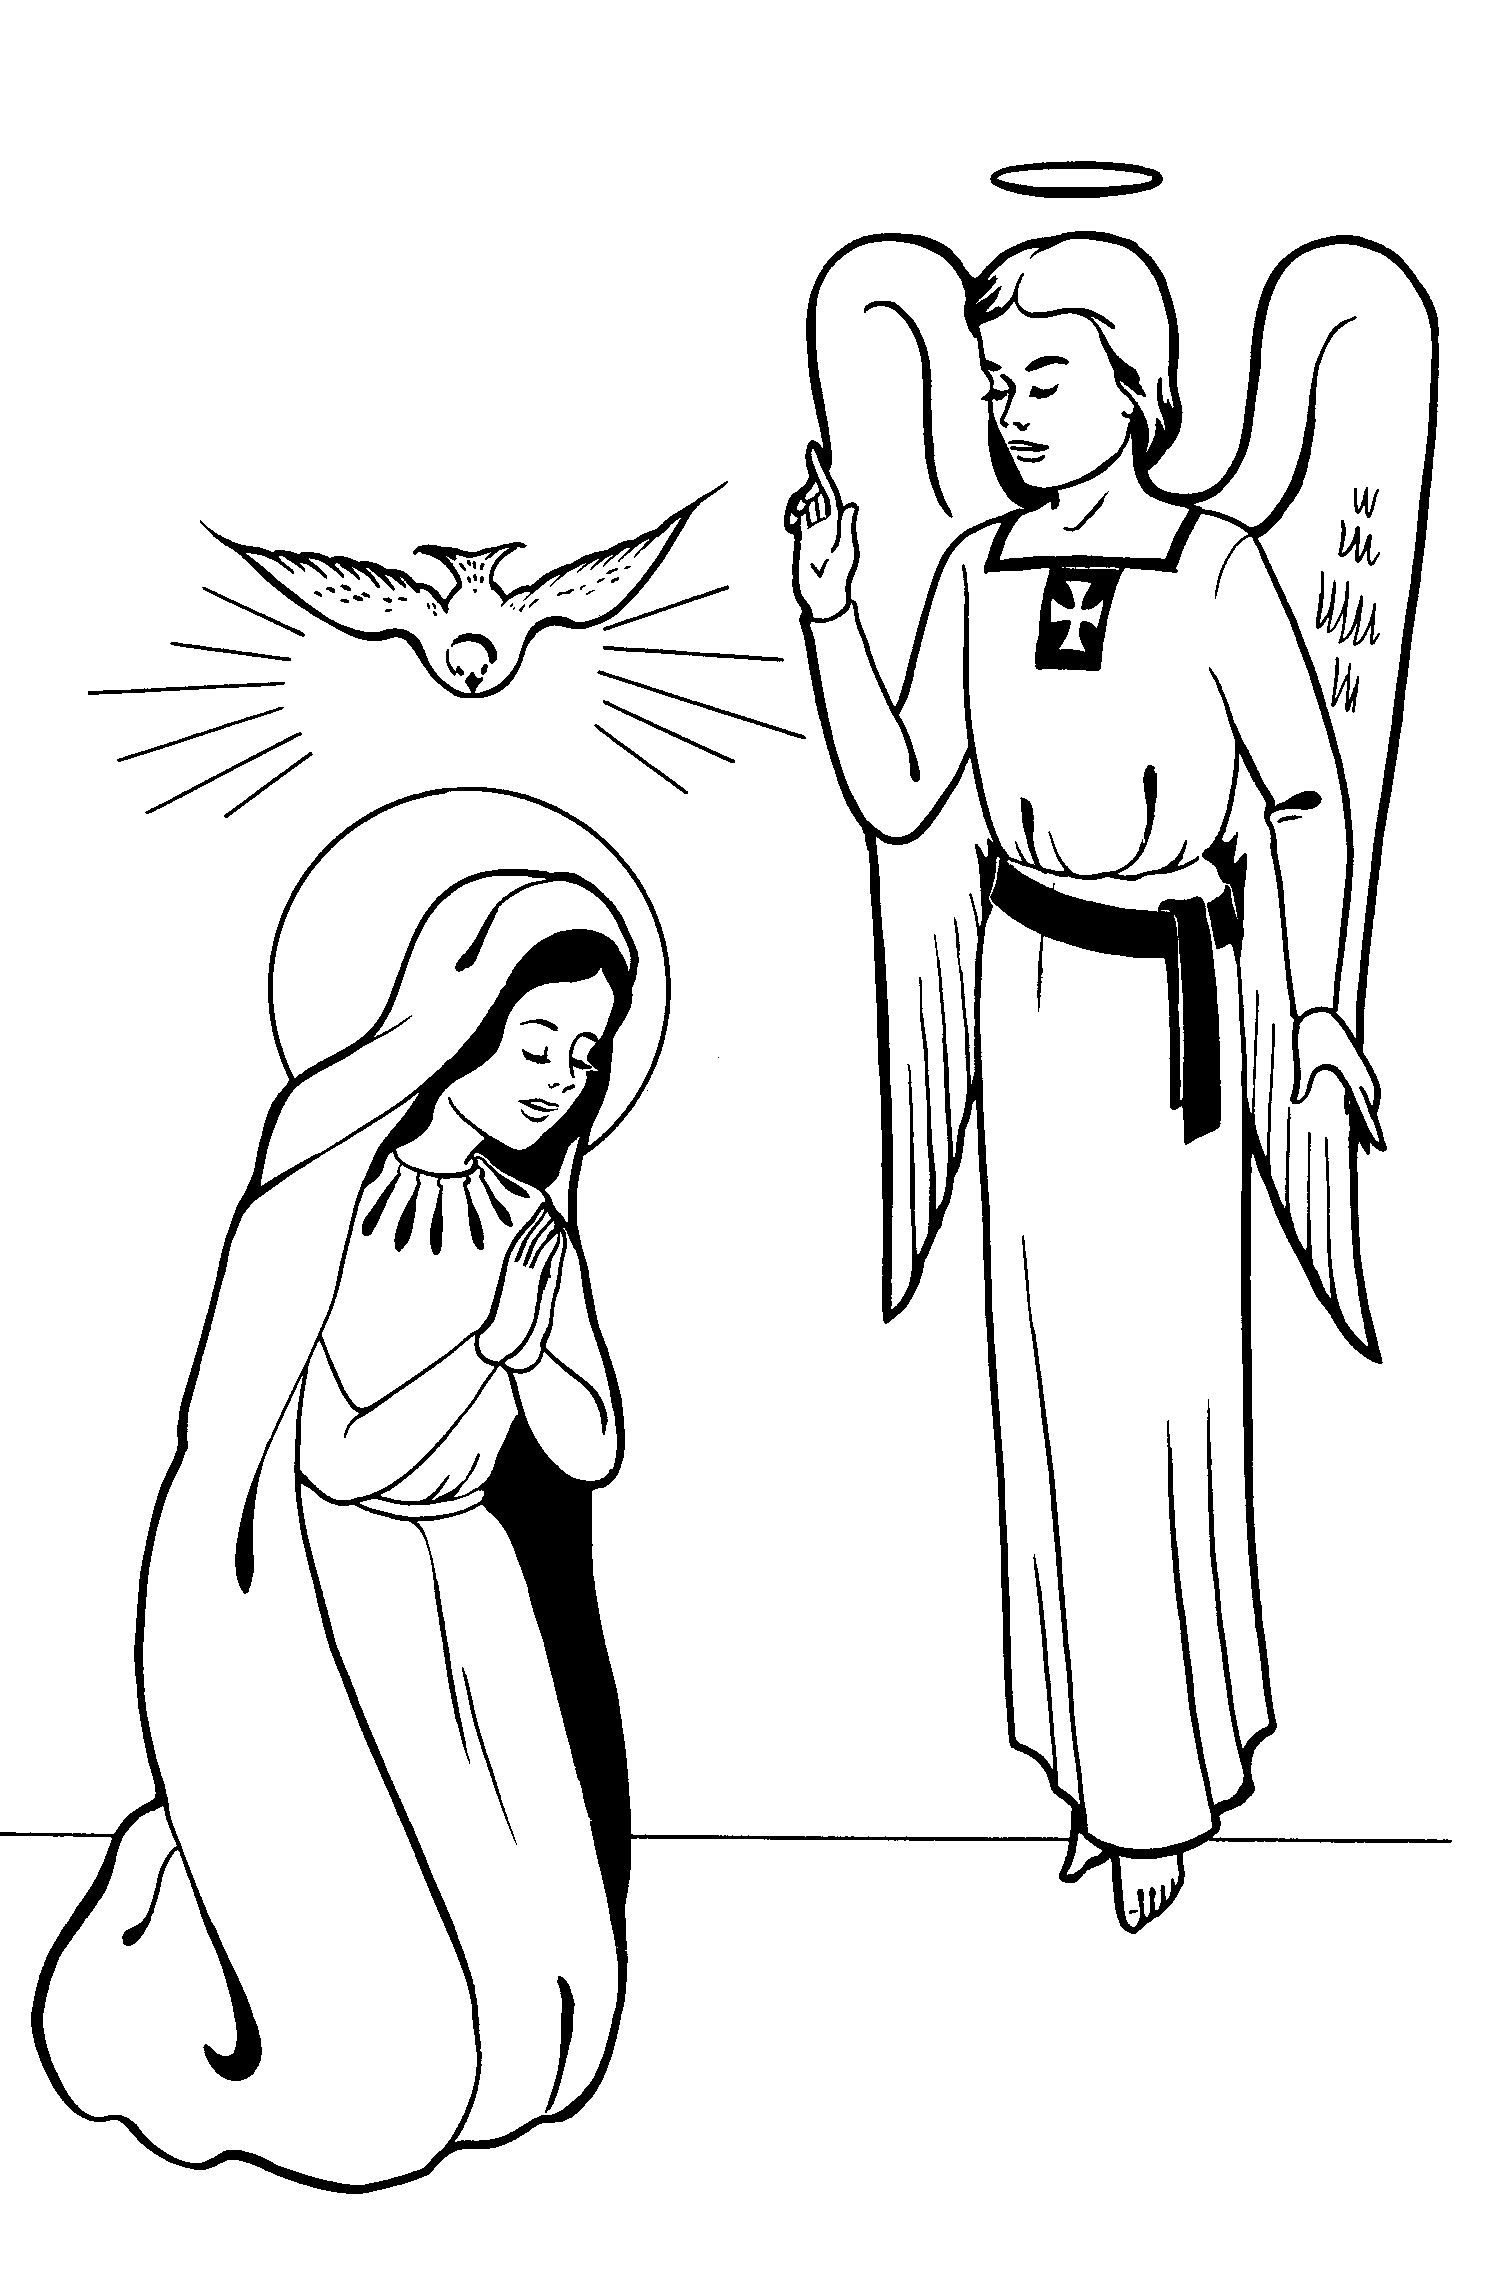 Mary Coloring Pages Printable Coloring pages